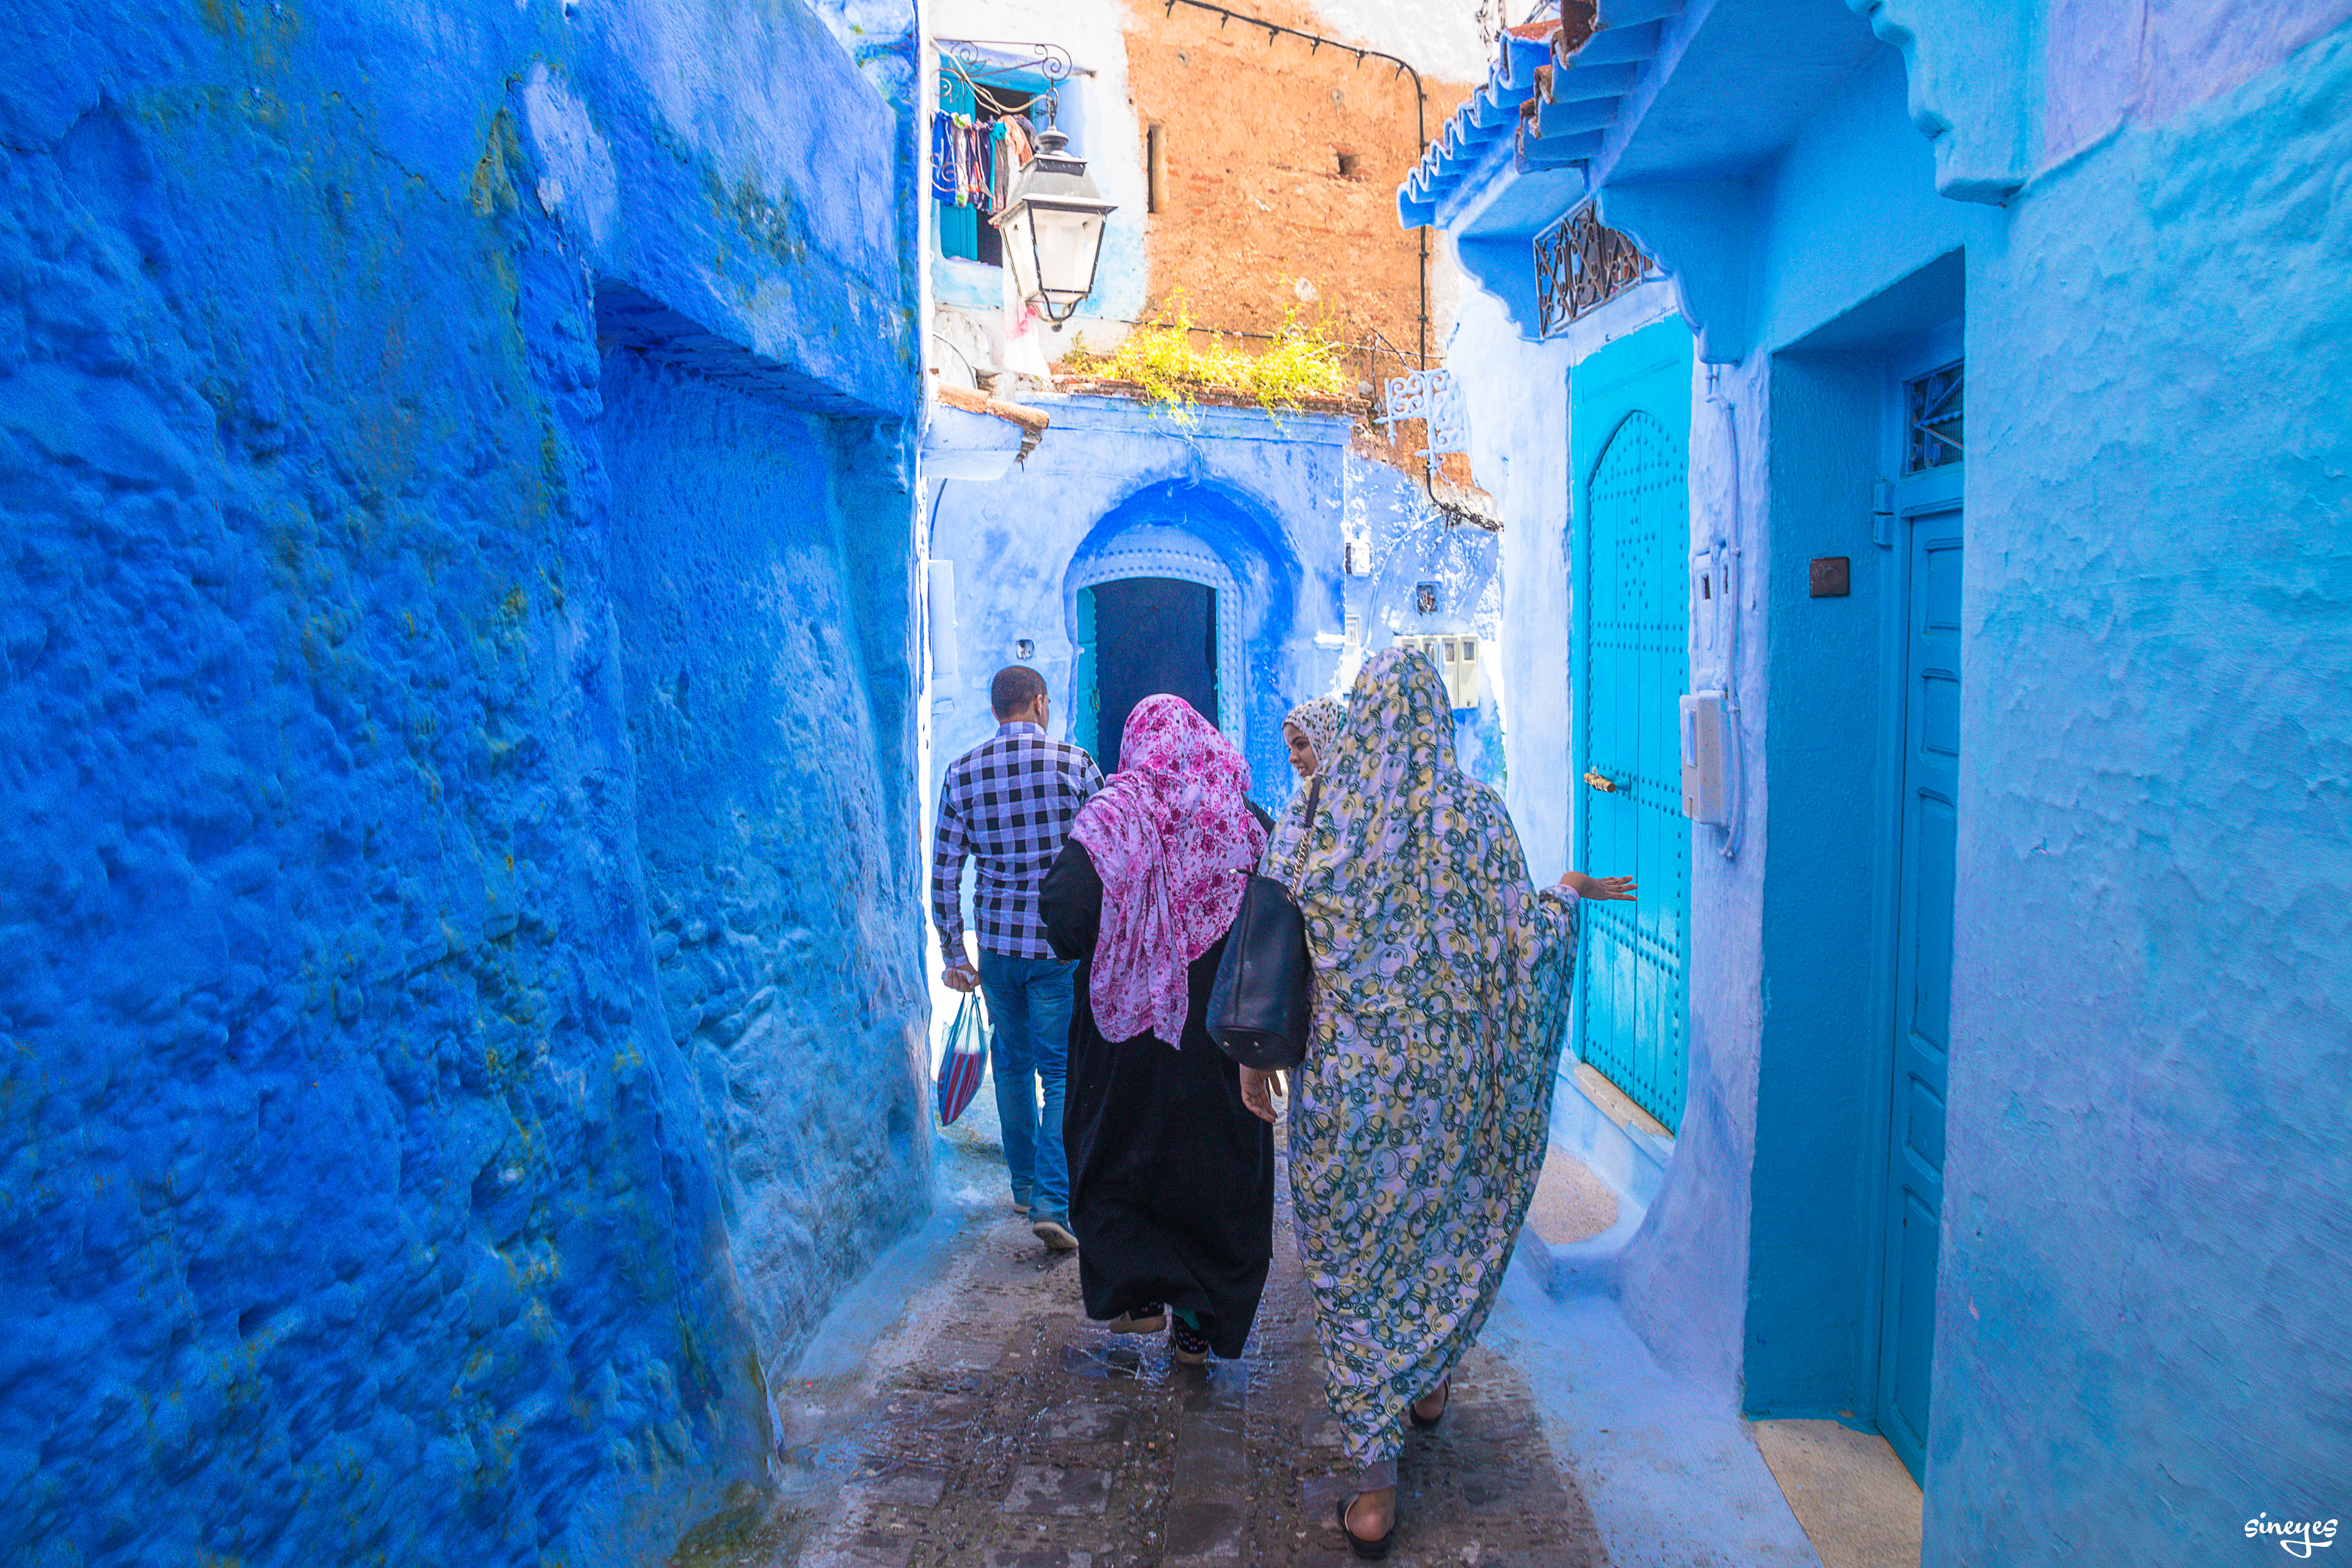 3 voiles - Chefchaouen, Maroc, avril 2018